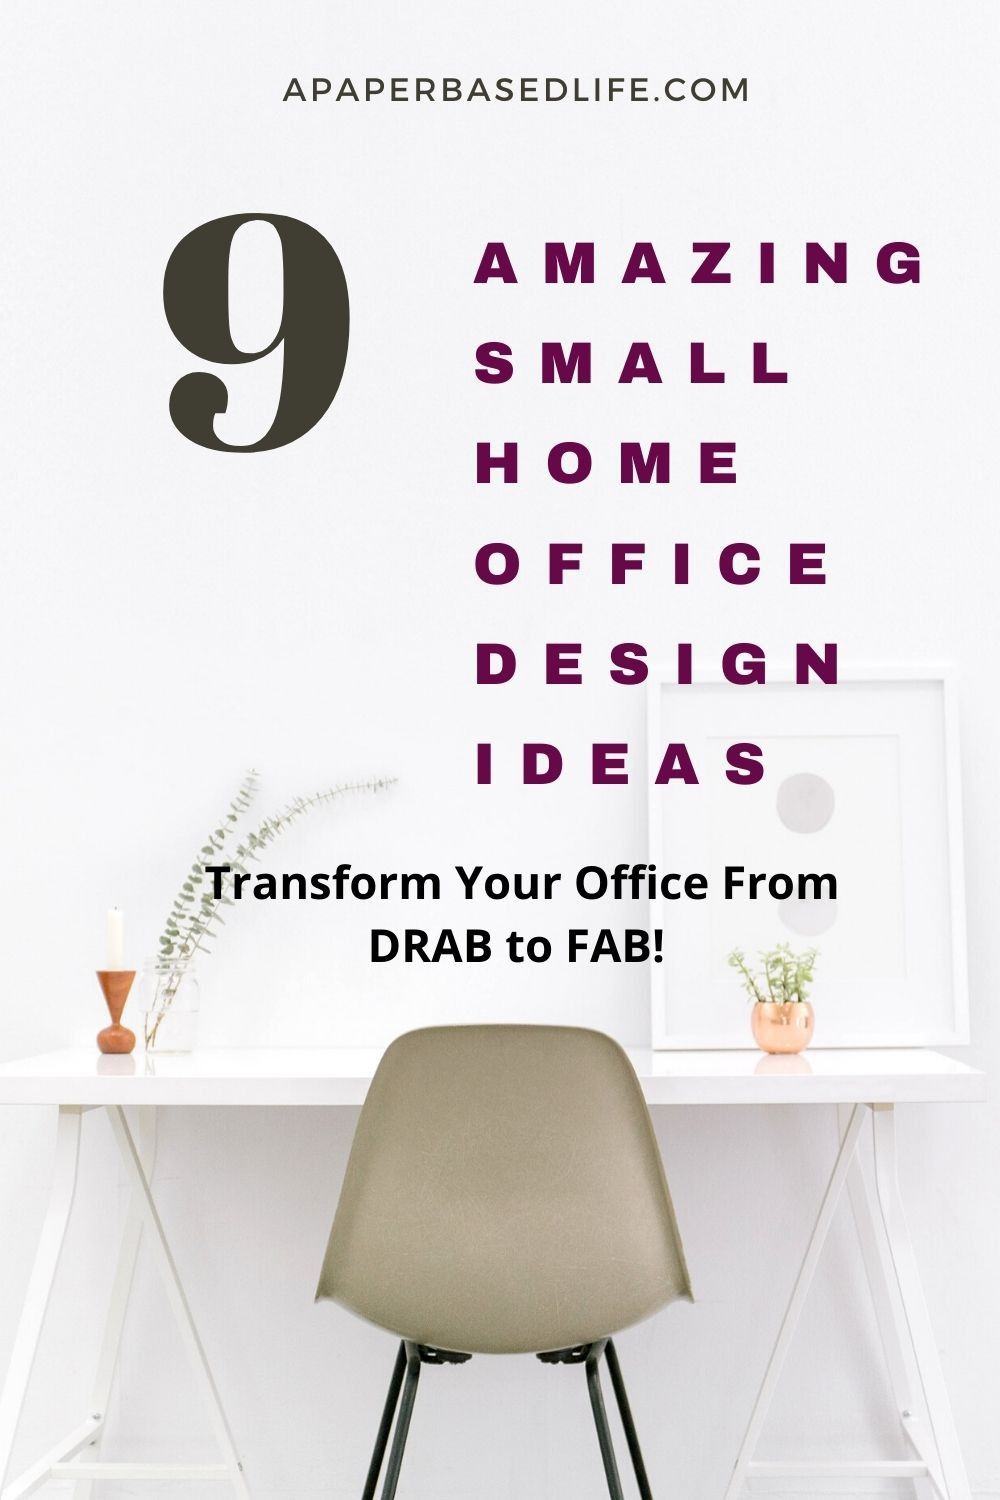 If your looking to remodel your small Home Office space, or simply enjoy reading about small Home Office Design Ideas, this post is perfect for you. It'll give you a detailed list of ways you can easily transform your office from DRAP to FAB-ulous! #officedecor #homeofficedesignideas #smallofficespaces #officedecoratingtips